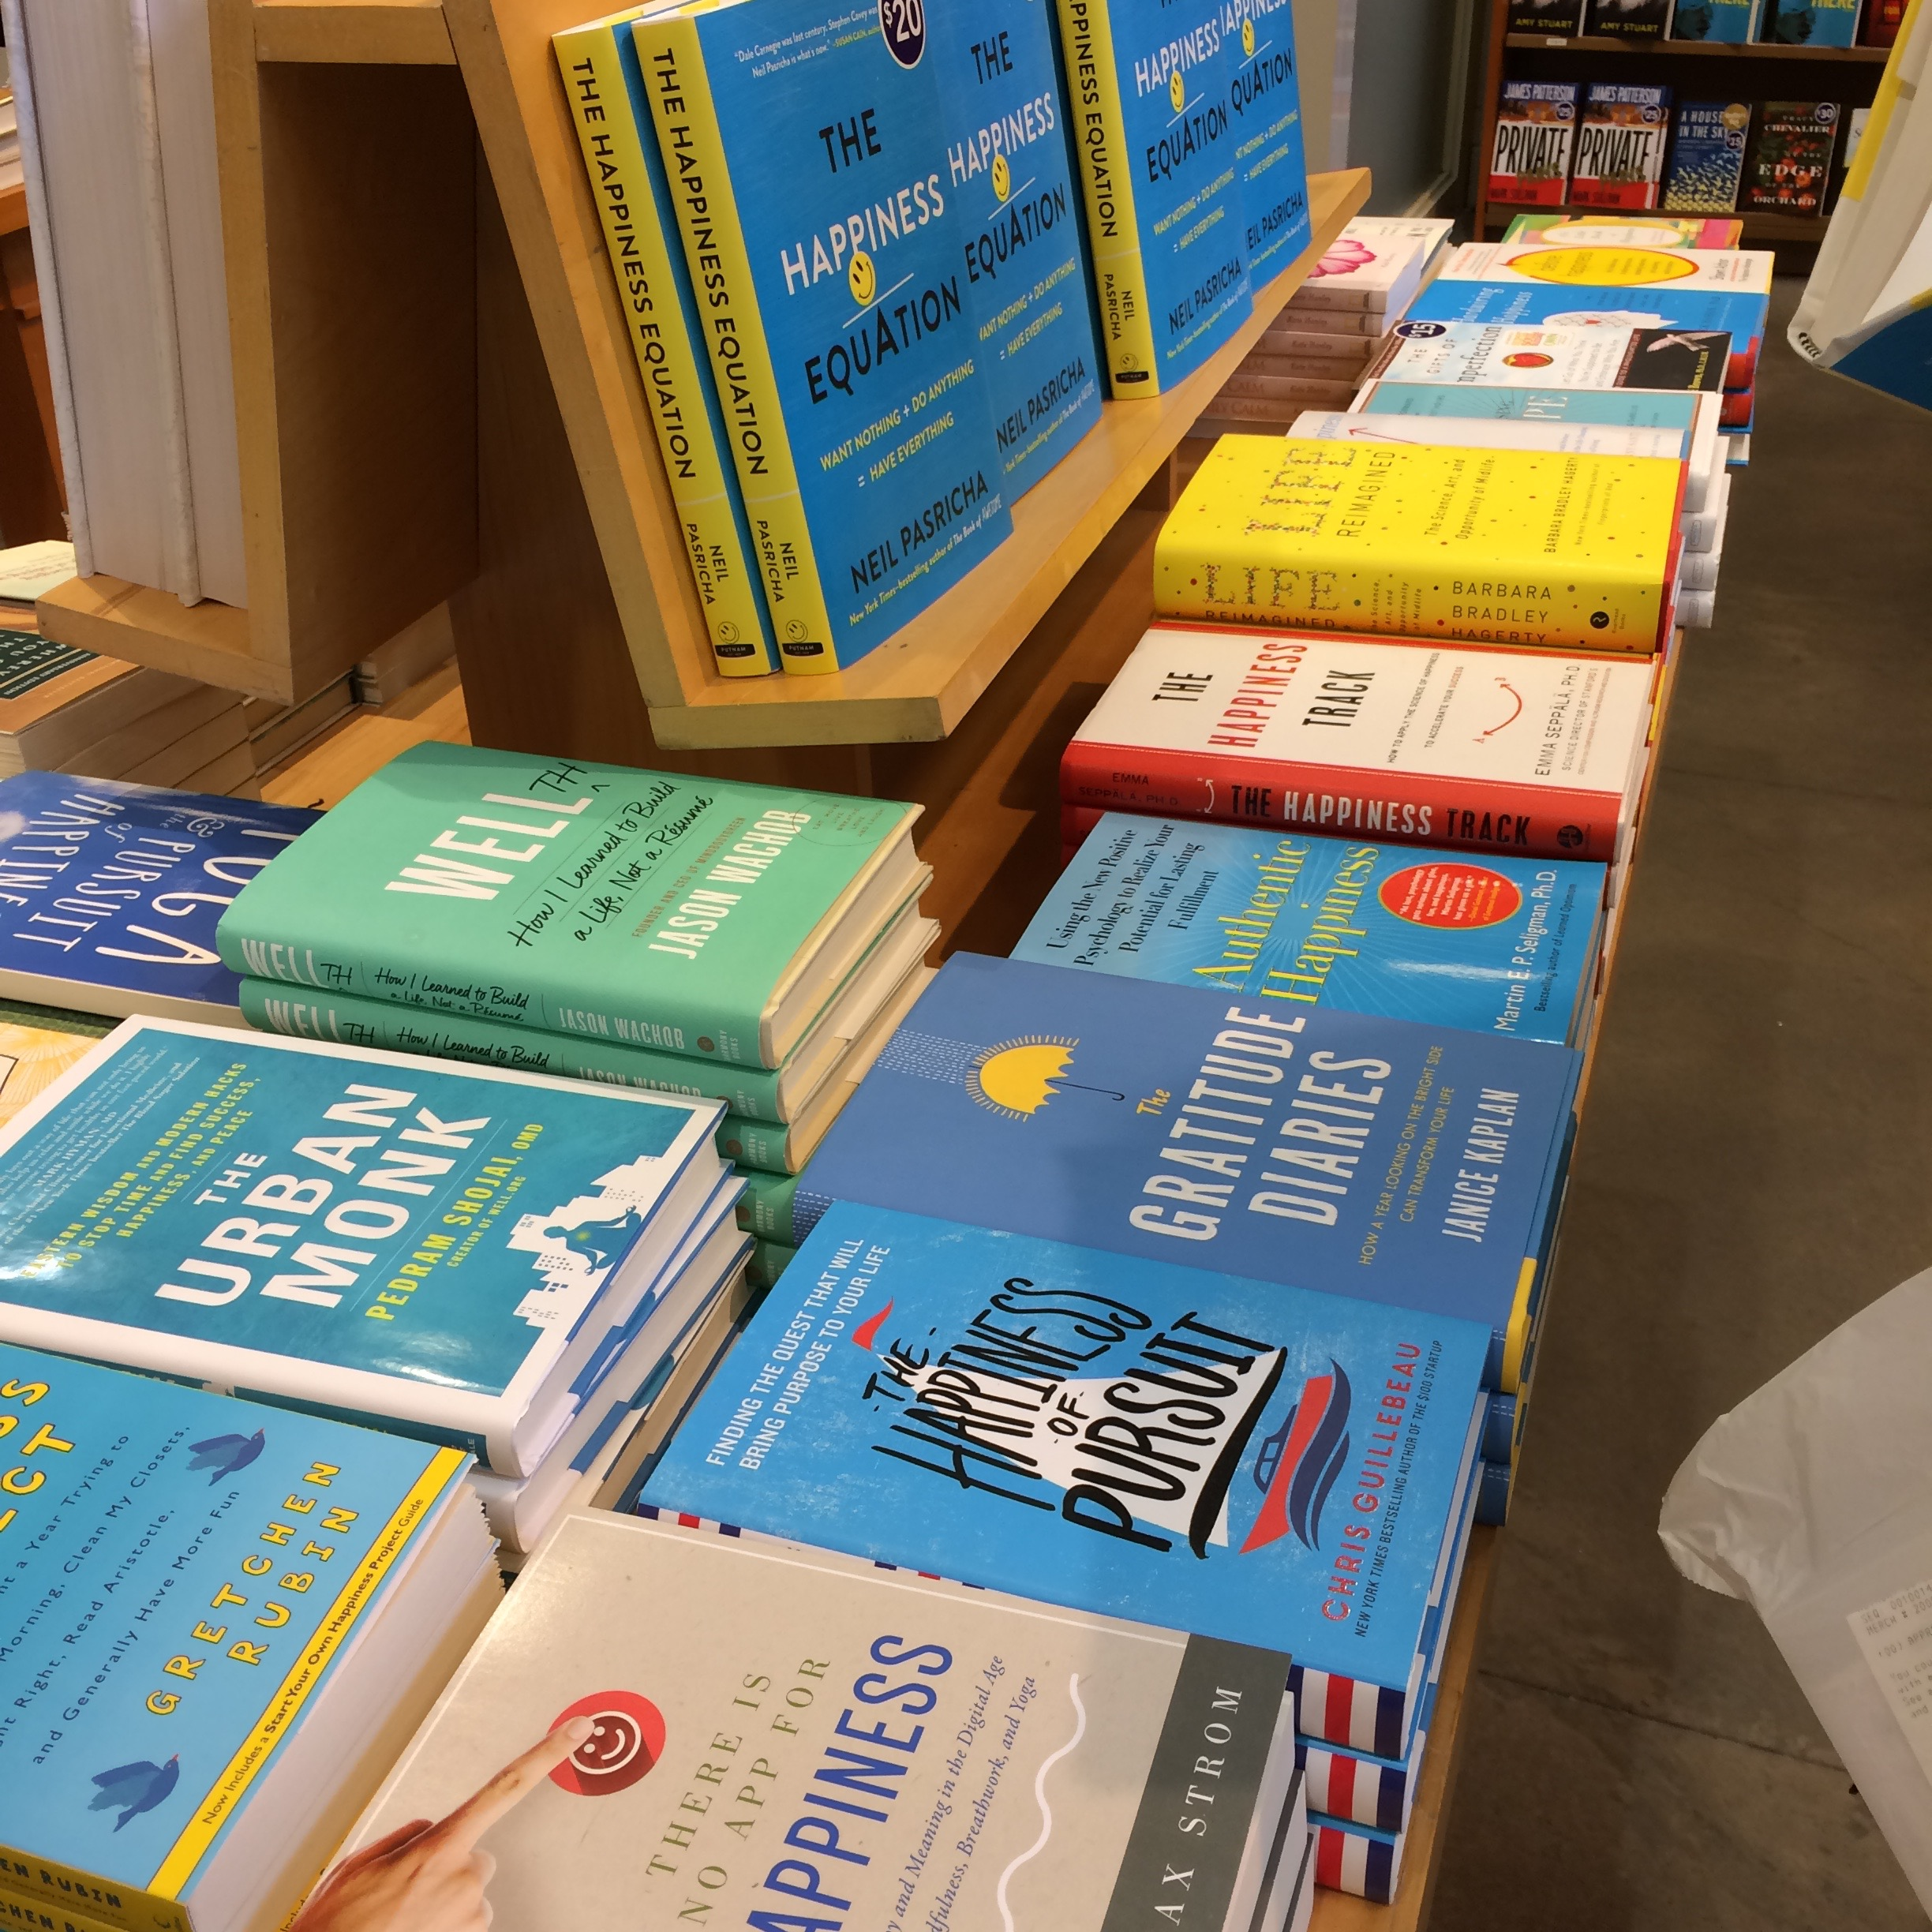 My local bookstore has quite the selection of books on happiness.